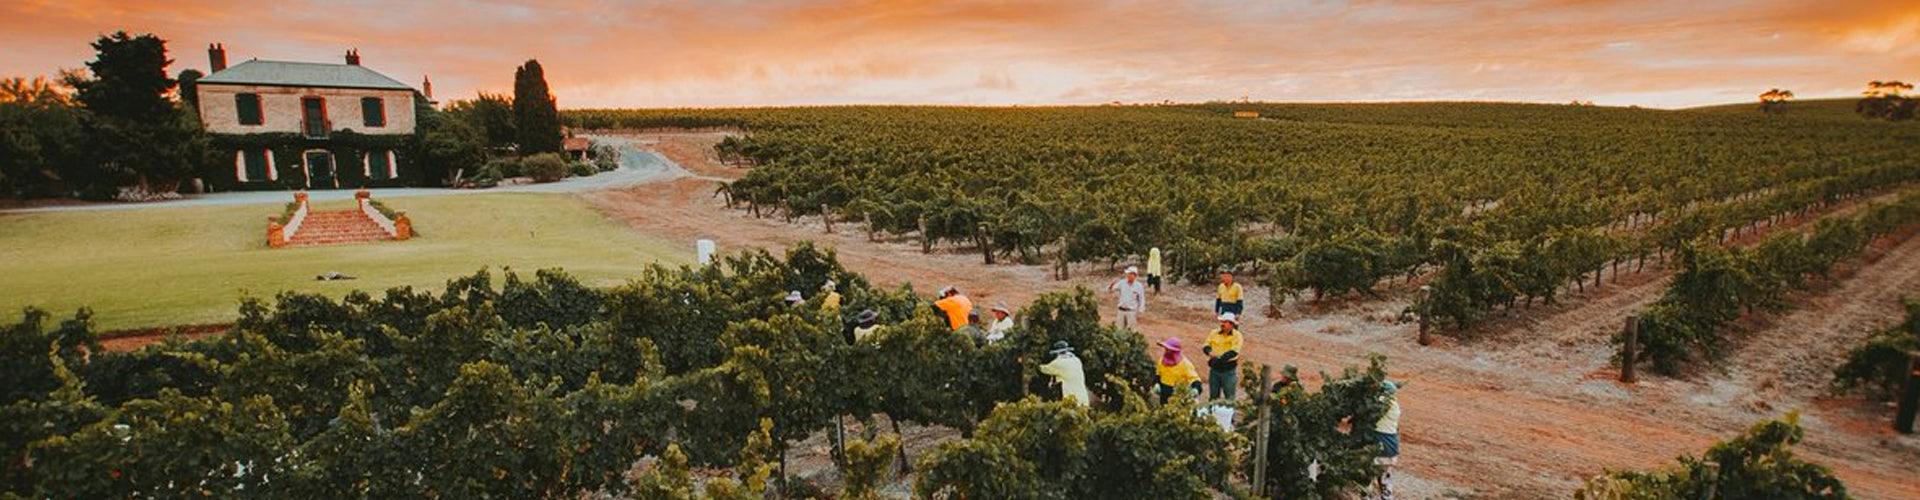 Clos Clare Vineyards Australia